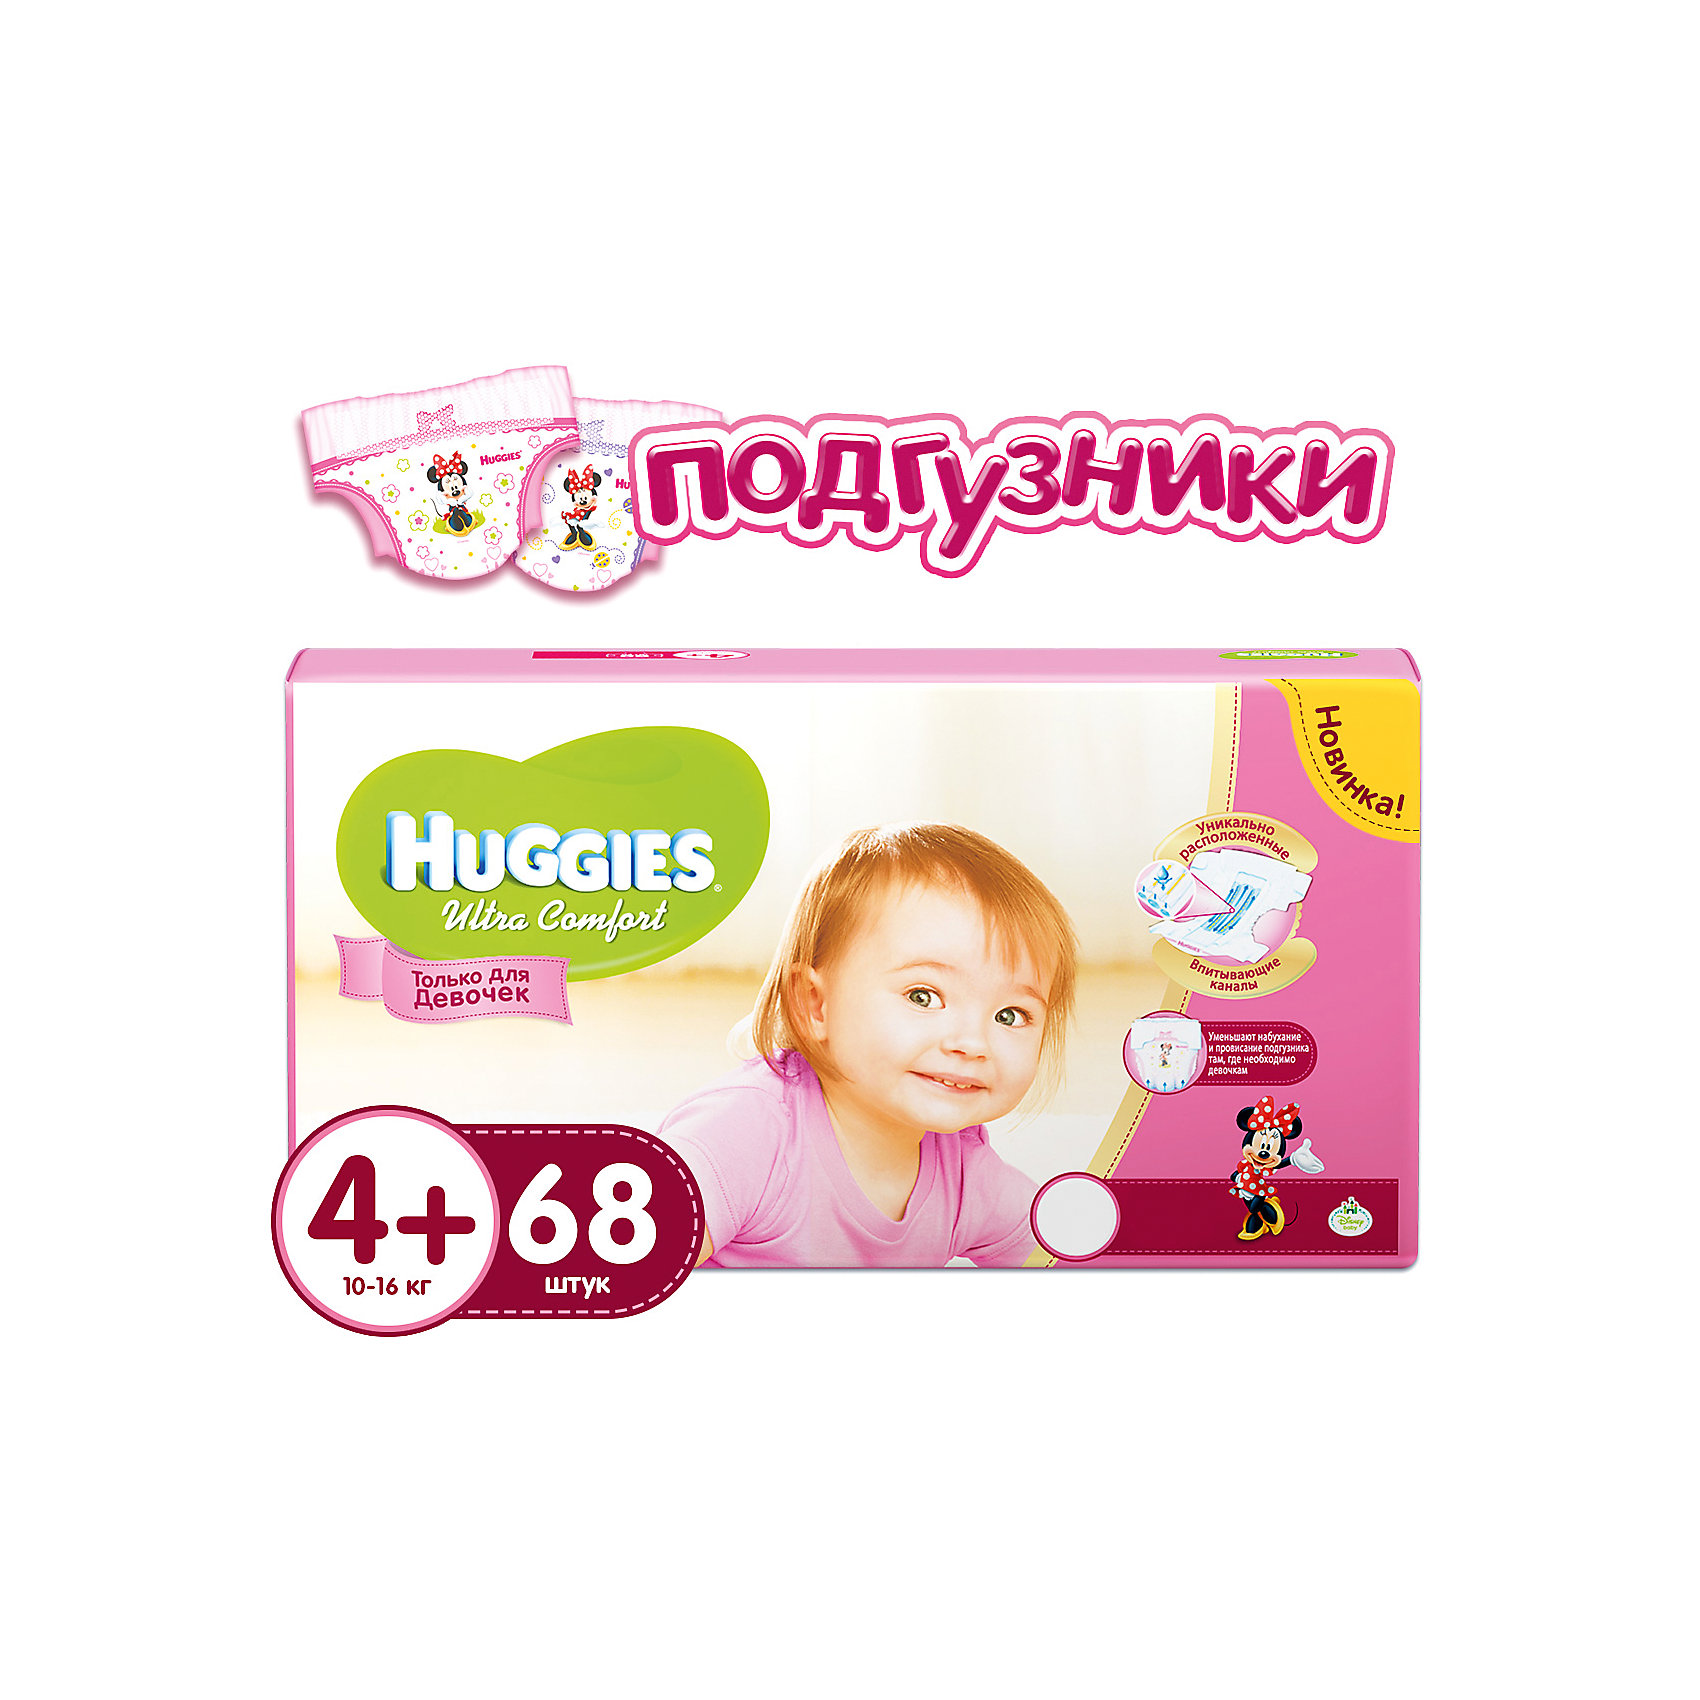 ���������� Huggies Ultra Comfort ��� ������� Giga Pack (4+) 10-16 ��, 68 ��. (HUGGIES)